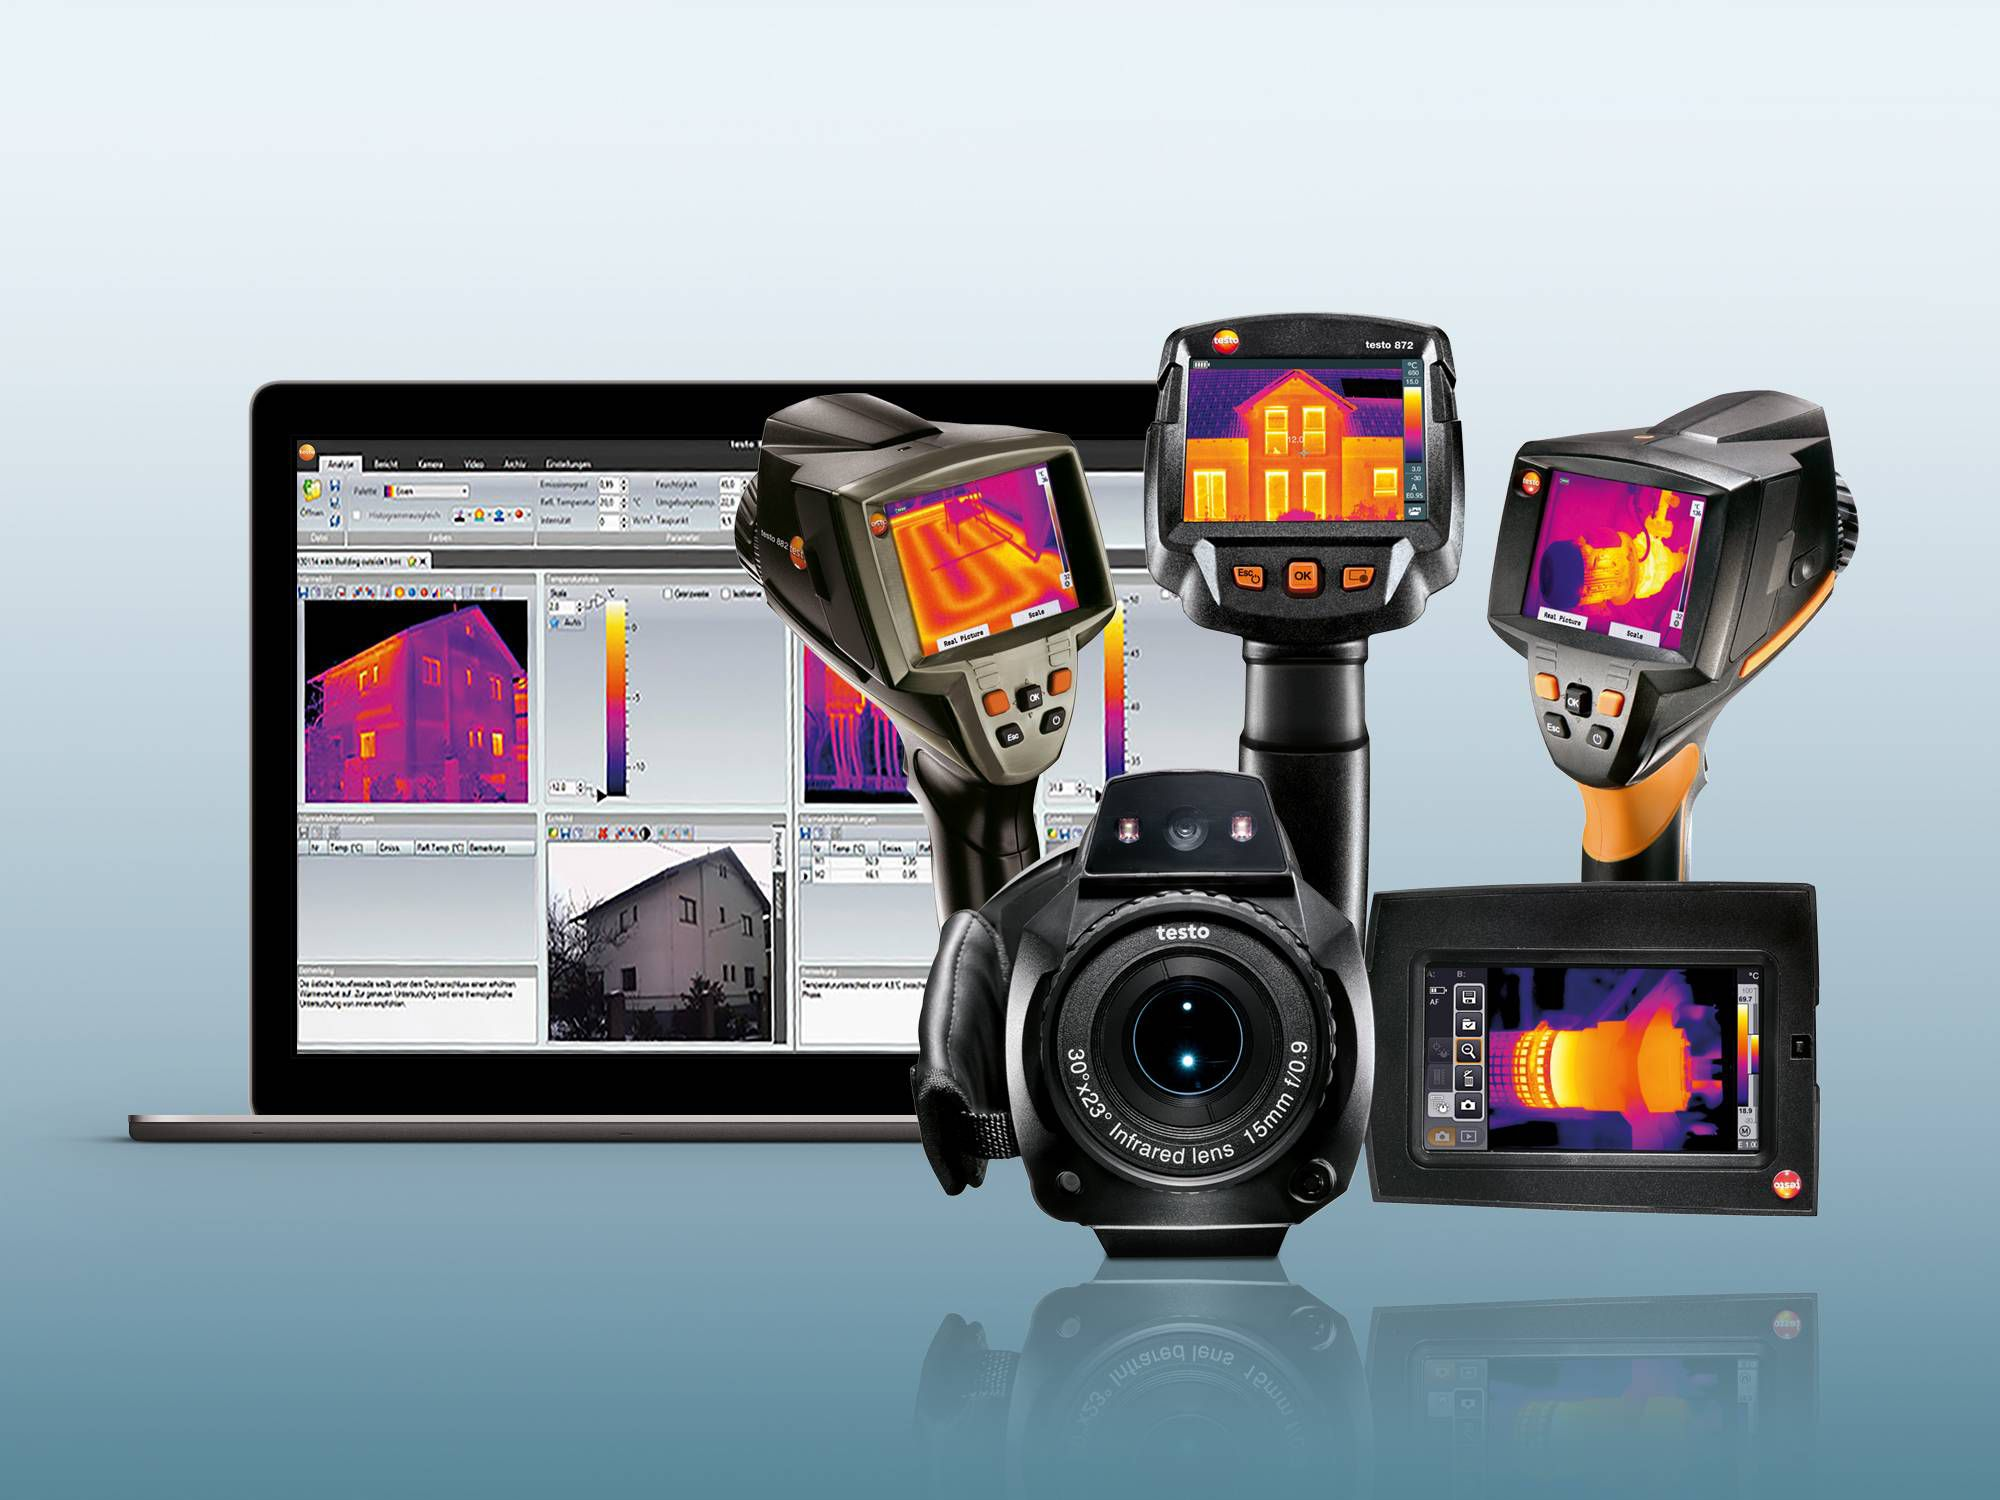 Thermal imagers Testo with IRSoft